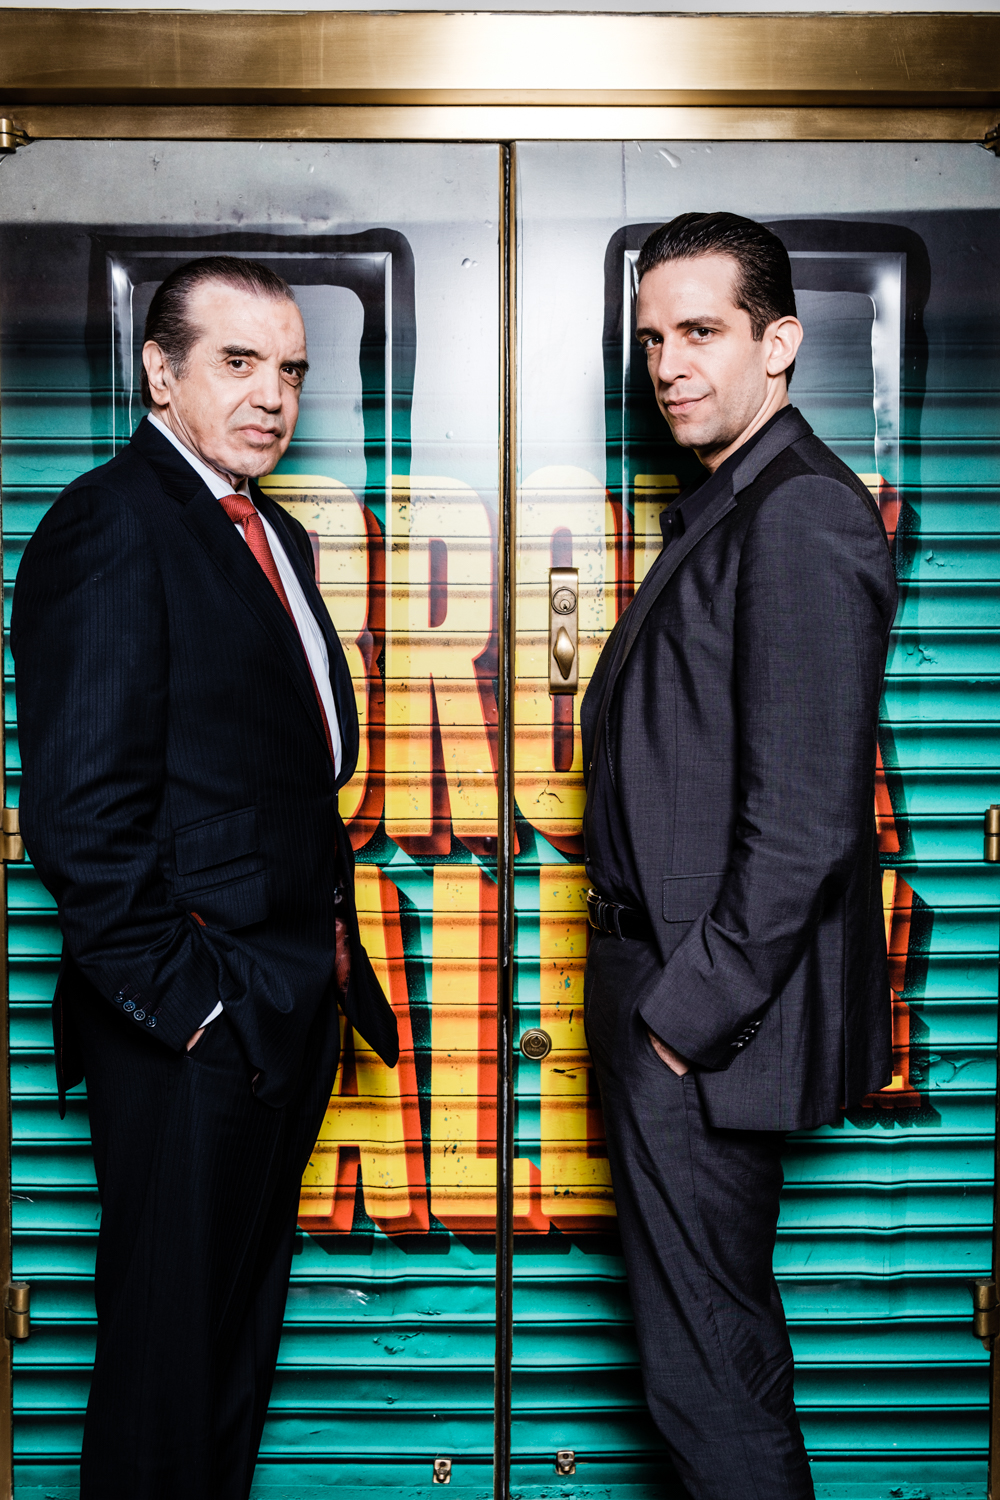 Chazz Palminteri.and Nick Cordero at the Longacre Theatre in New York City.